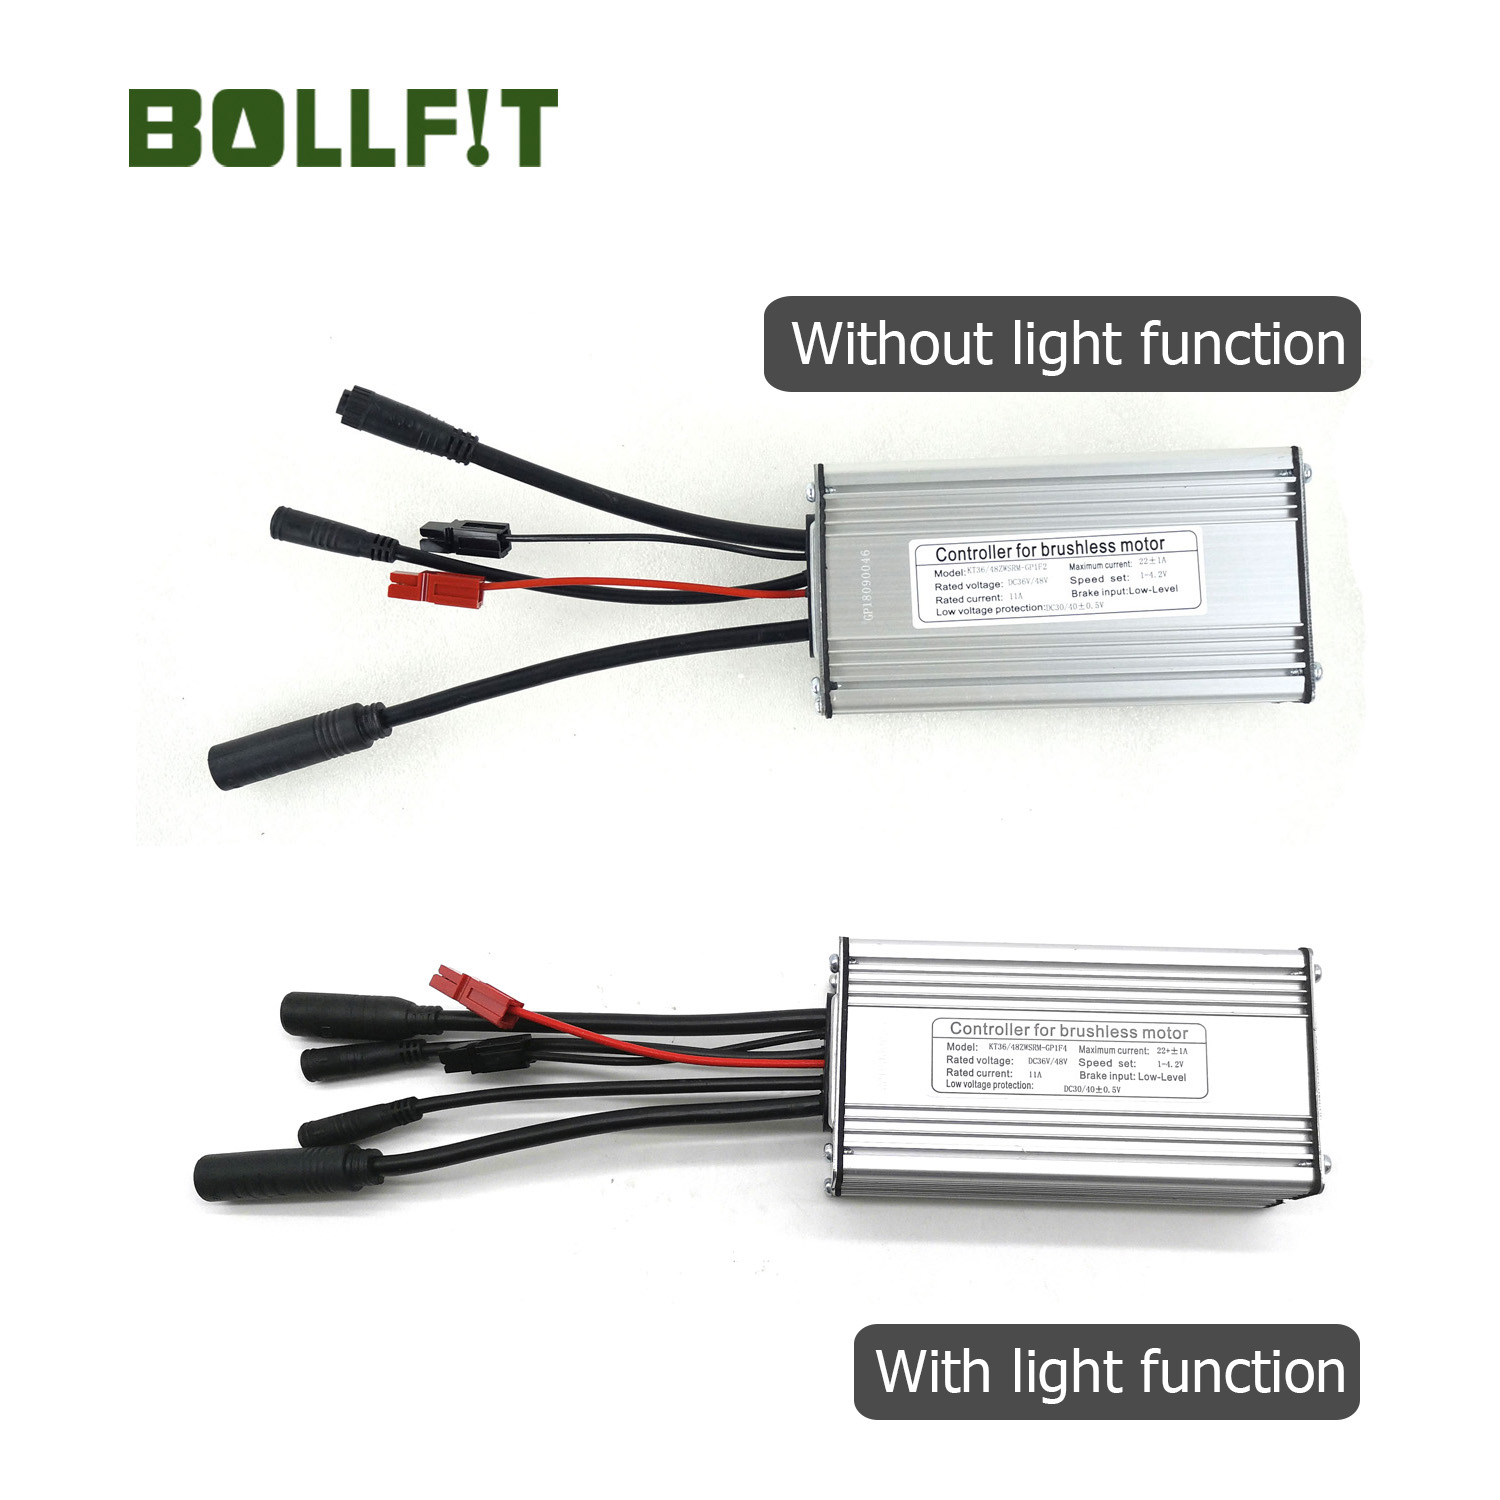 BOLLFIT Ebike Controller 36/48V 22A 25A 9 Mosfets Light Function Whole Water Proof  Plug  KT Kunteng 500W Motor Electric Bicycle